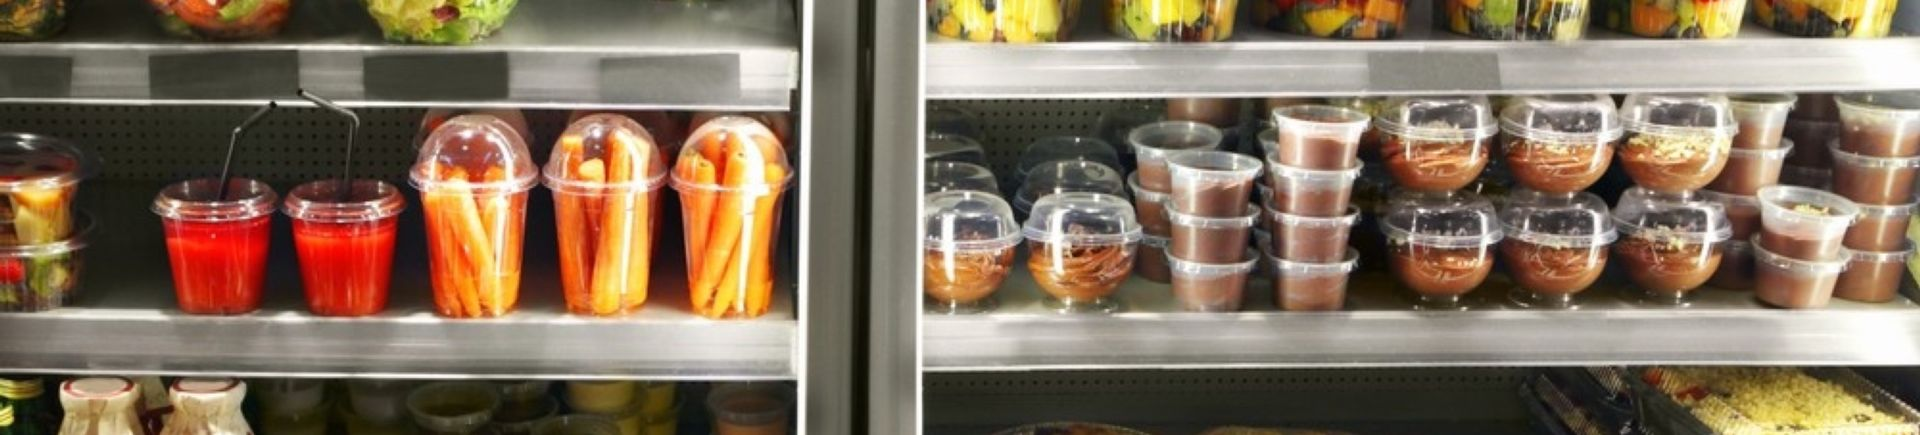 cling film and food packaging